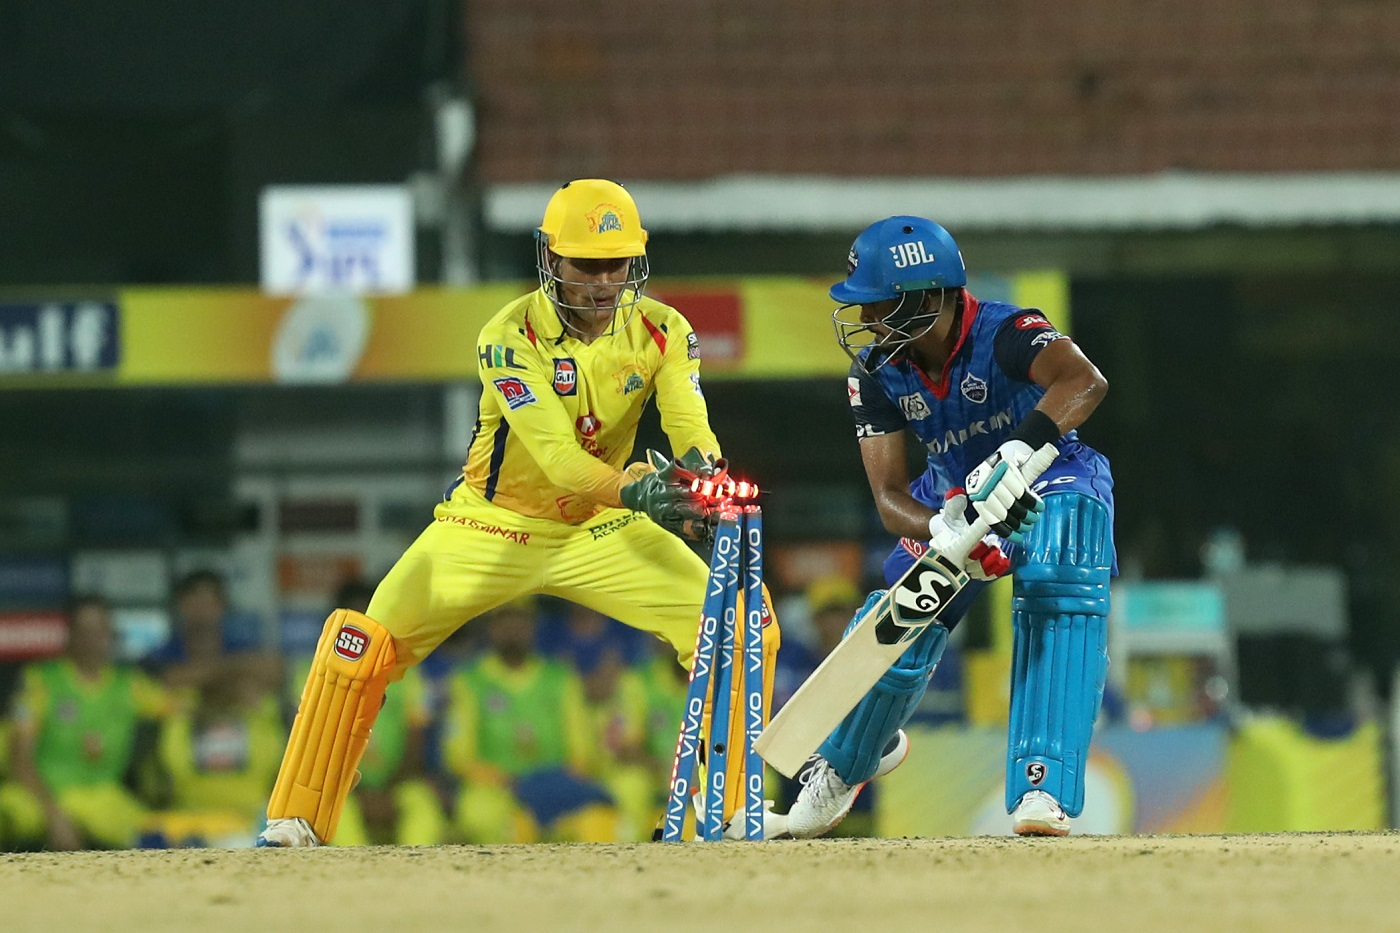 IPL 2019: Looking Forward to Finish in the Second Spot - Shreyas Iyer 1